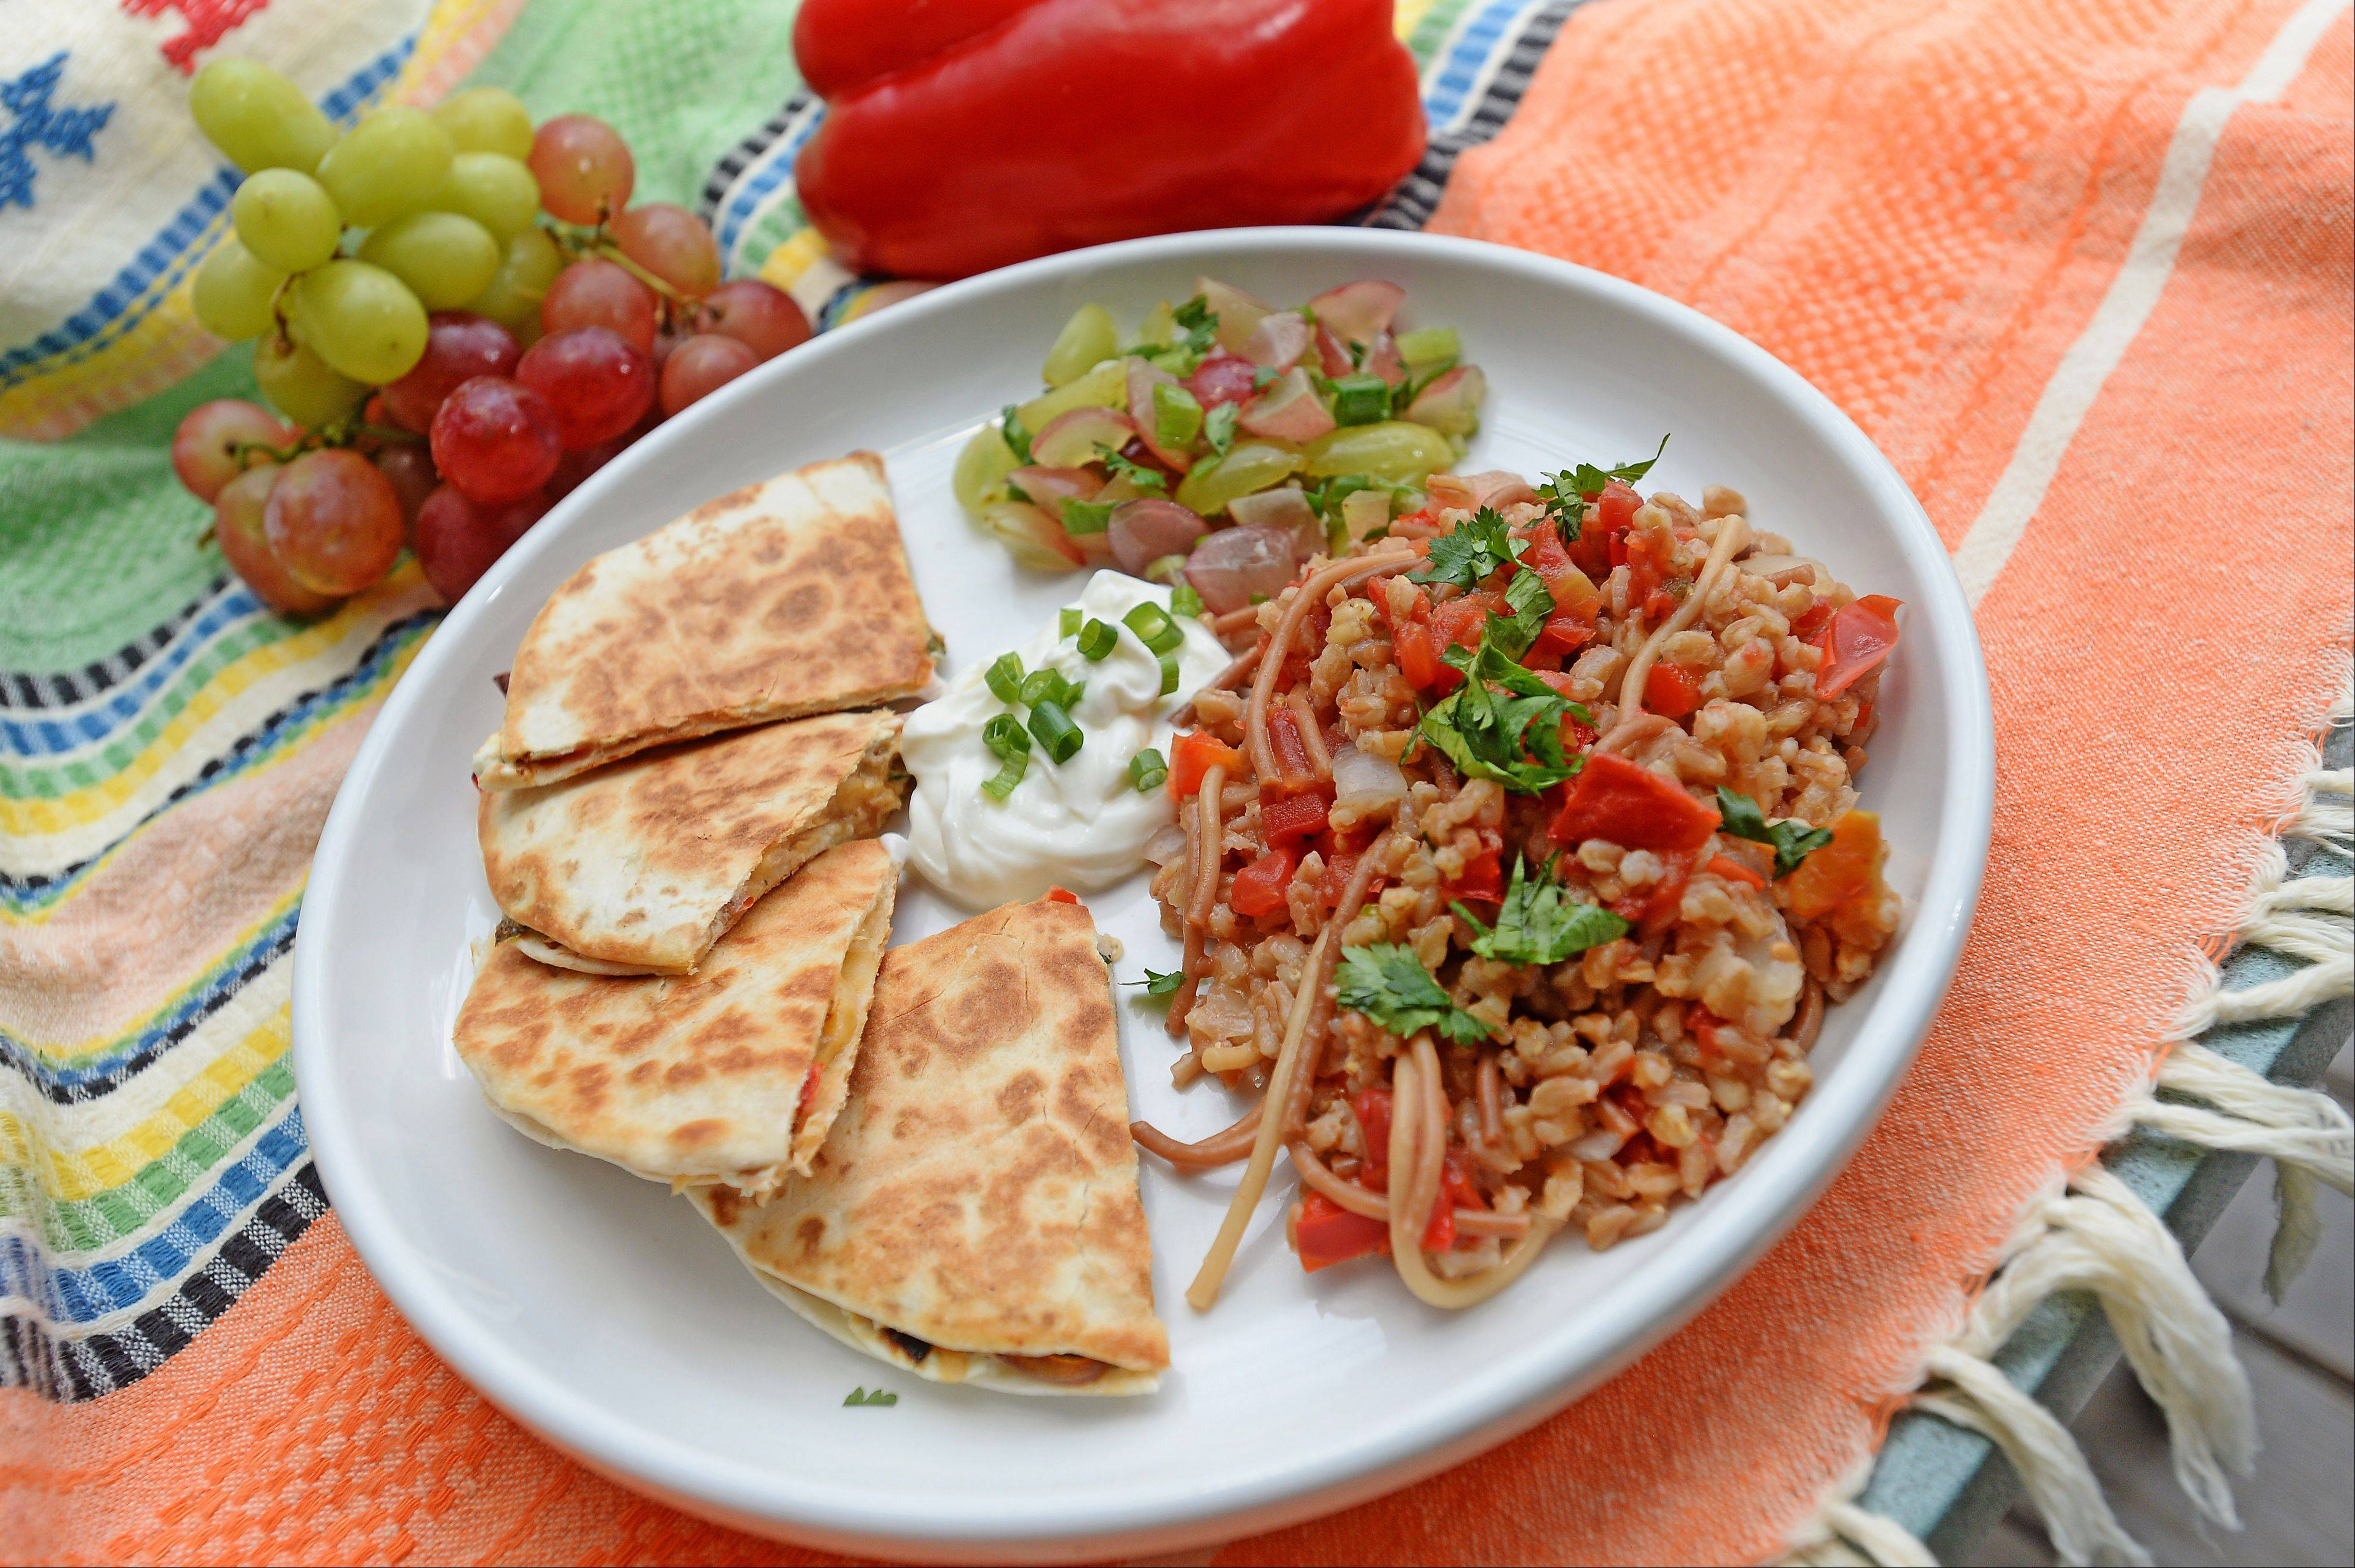 2011 Cook of the Year Penny Kazmier wasn't afraid to put her competitive cooking skills to the test. How do you think her Salmon Quesadillas with Grape Salsa and Spanish Farro stack up against the 2013 contestants?